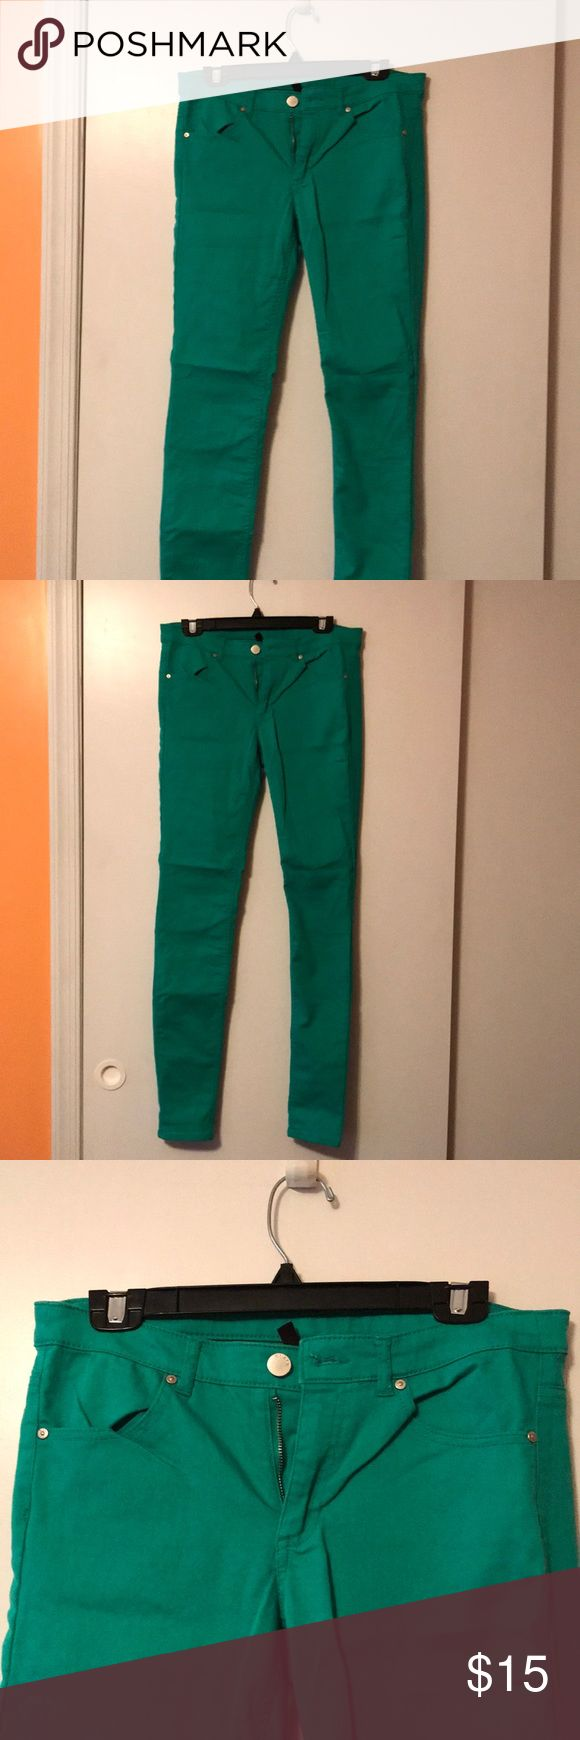 Skinny pants Green skinny pants. Back pockets. I love these pants!! Dress up for work or dress down for a night out. H&M Pants Skinny